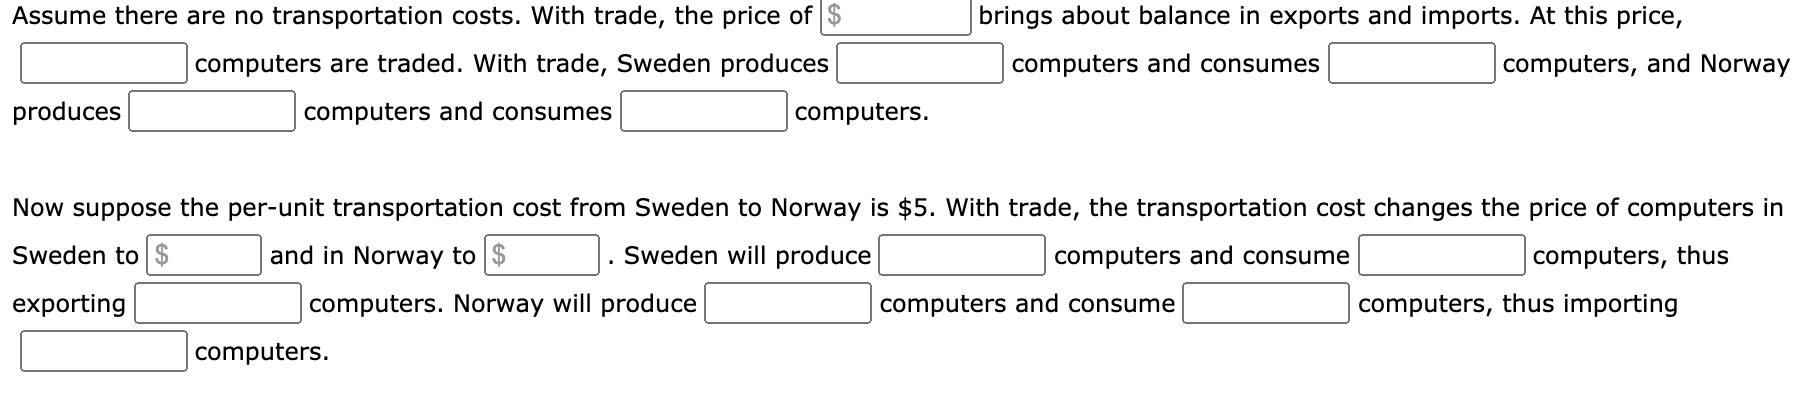 Assume there are no transportation costs. With trade, the price of $ computers are traded. With trade, Sweden produces produc